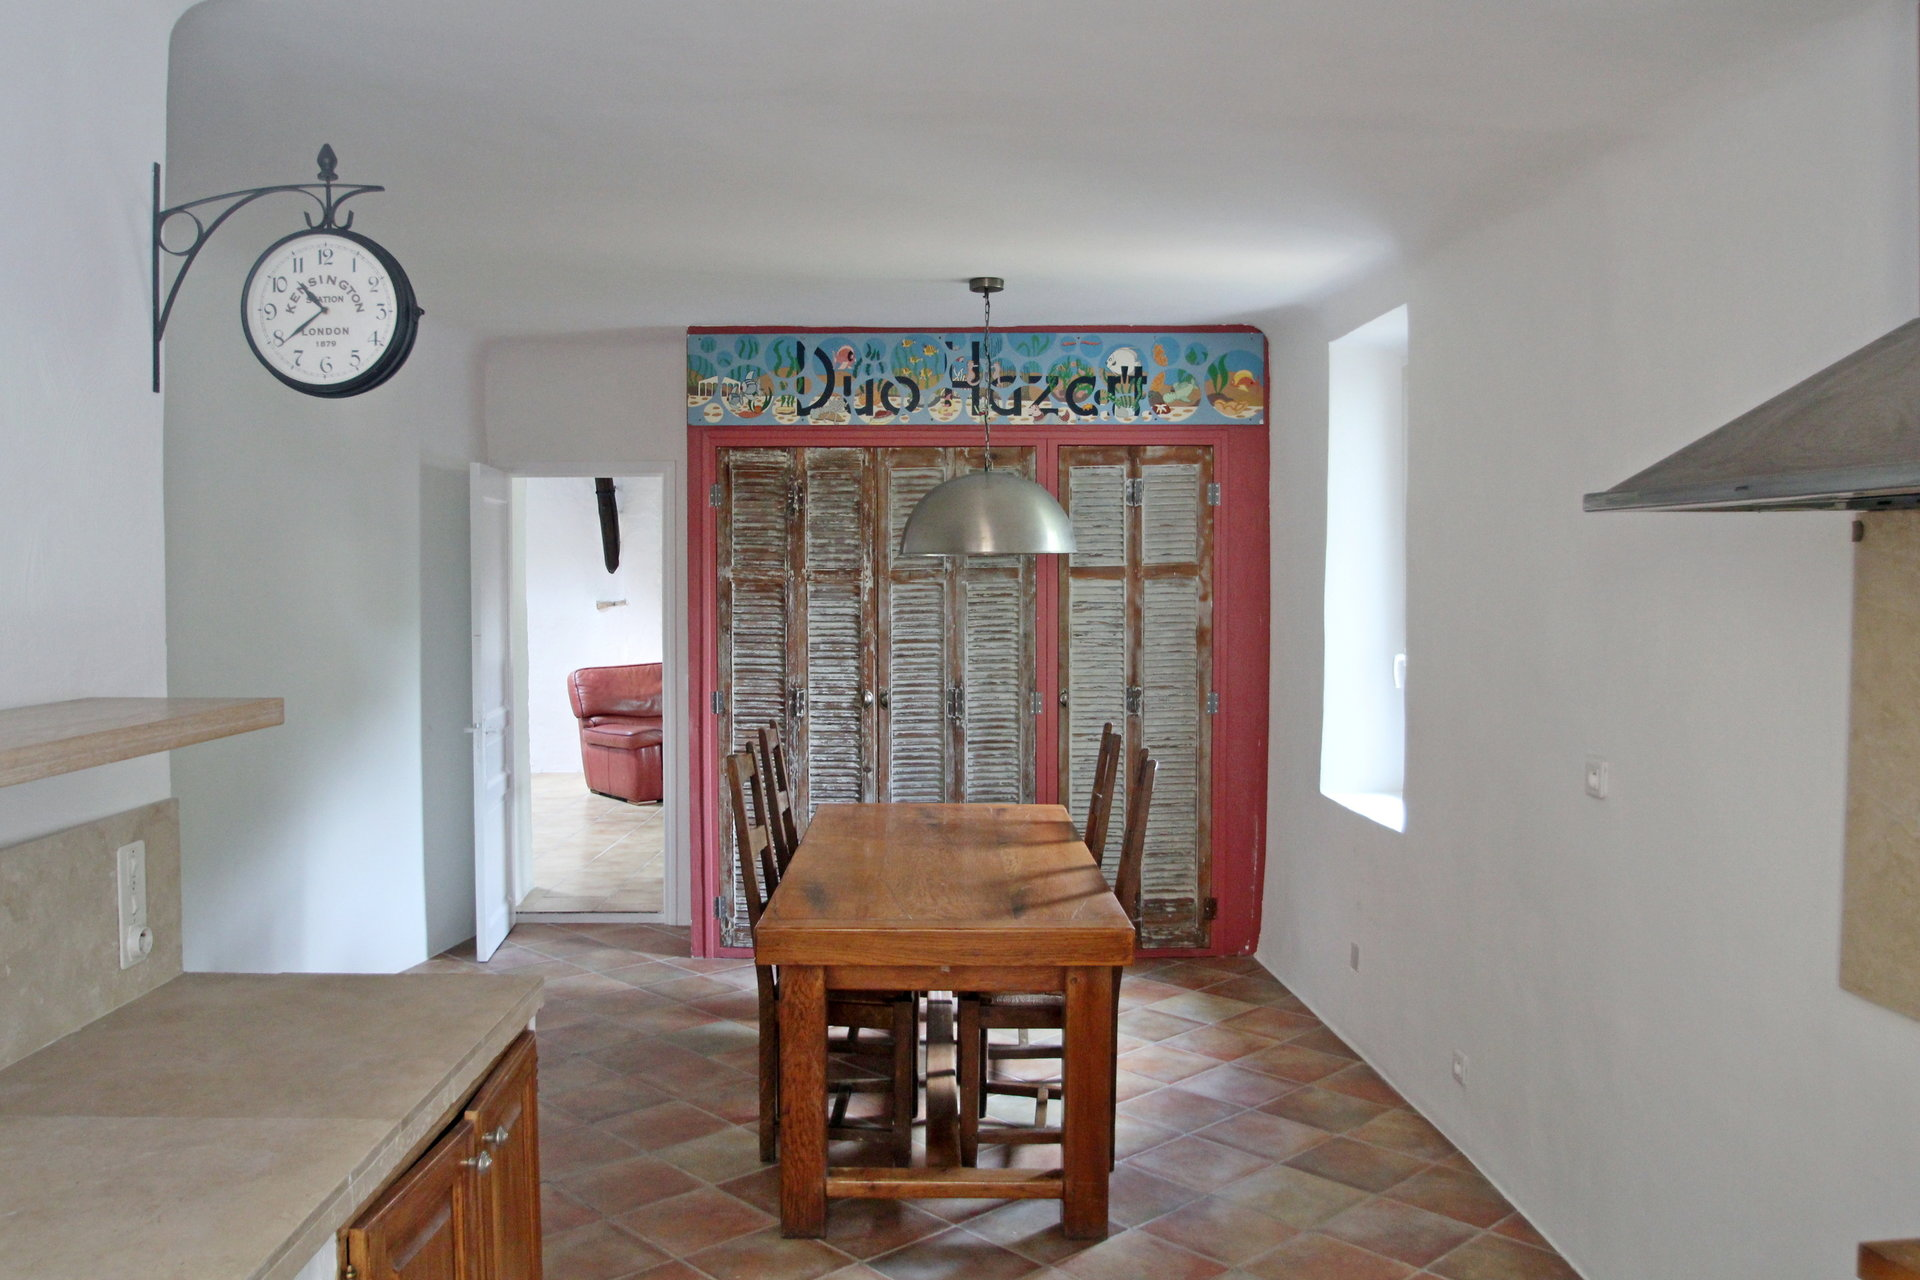 Fayence: villagehouse with small terrace